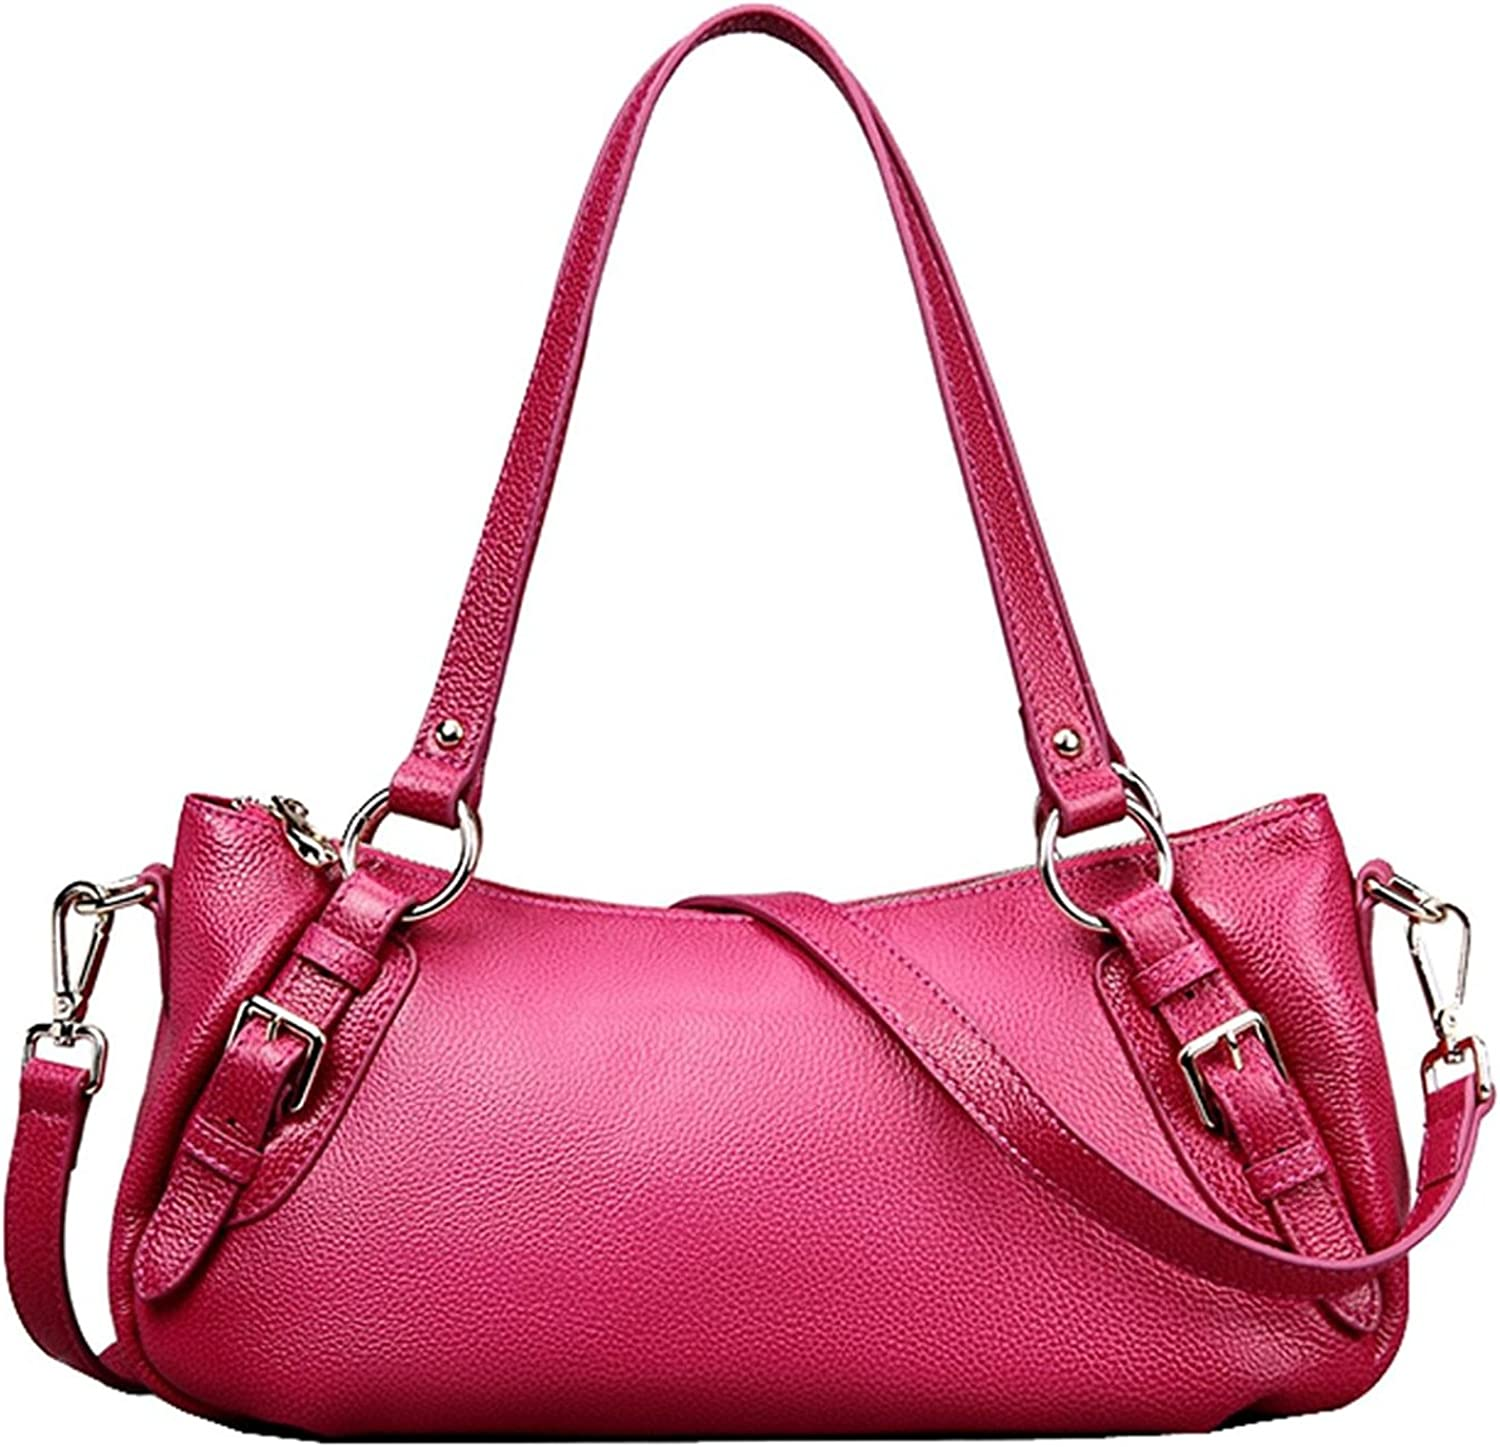 Colnsky Women's European And American Style First Layer Of Leather Tophandle Tote Shoulder Messenger Bag Cross Body Purse Vintage Handbag pink Red New Style